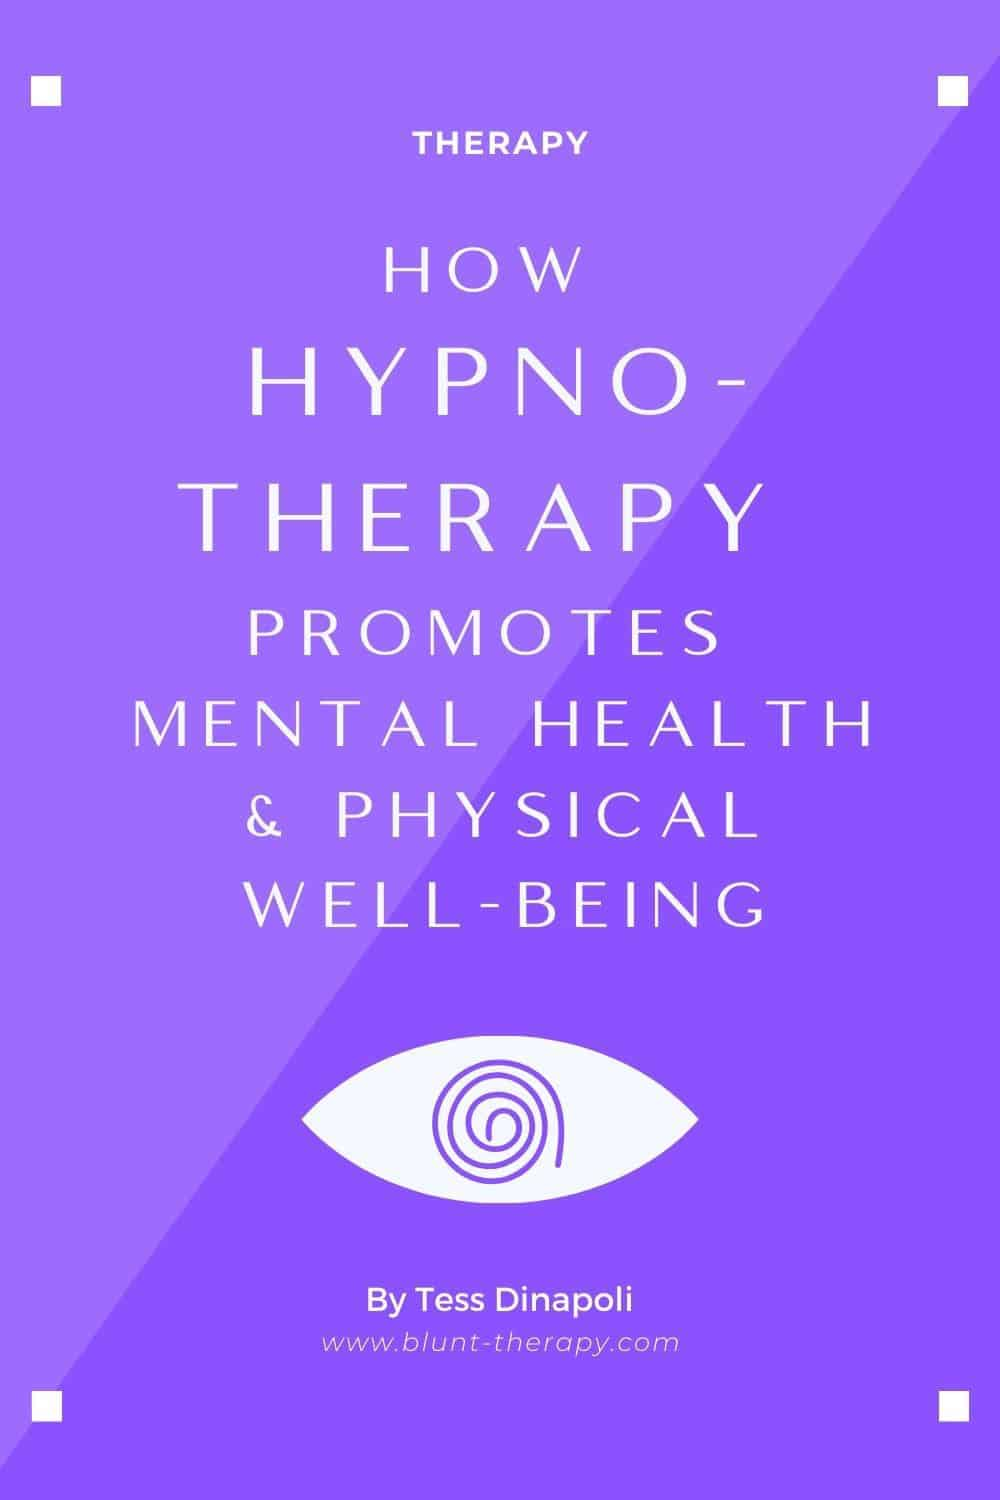 How Hypno-therapy Promotes Mental Health & Physical Well-Being